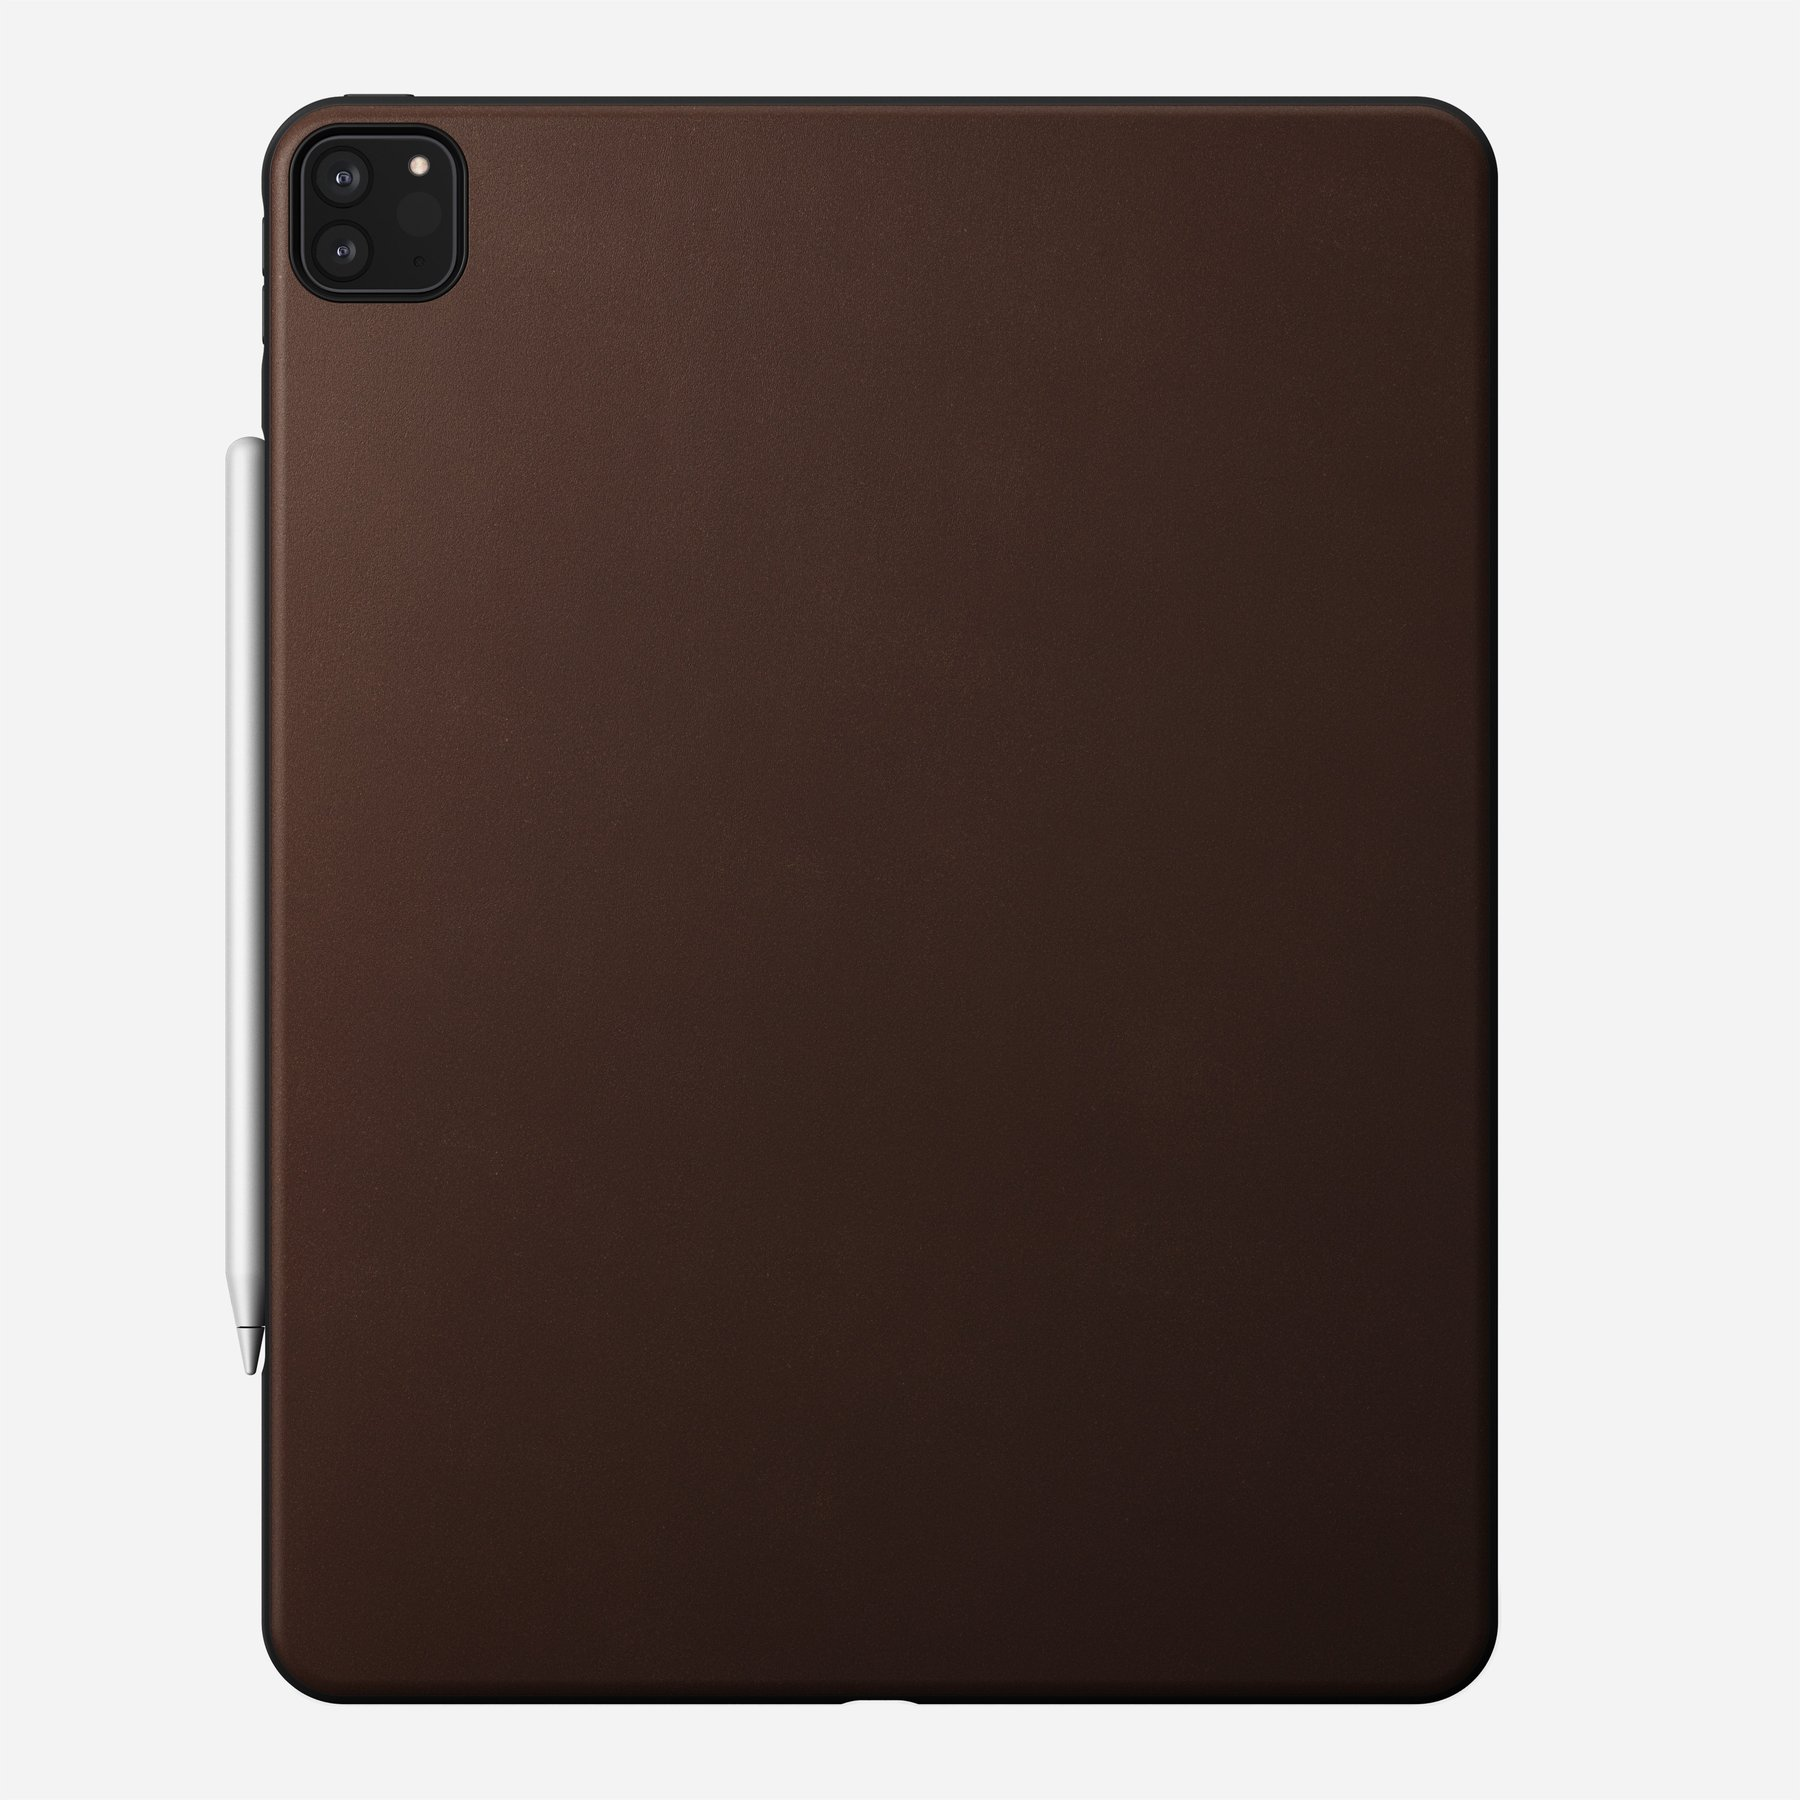 """Nomad Rugged Leather Case für iPad Pro 12,9"""" Rustic Brown"""